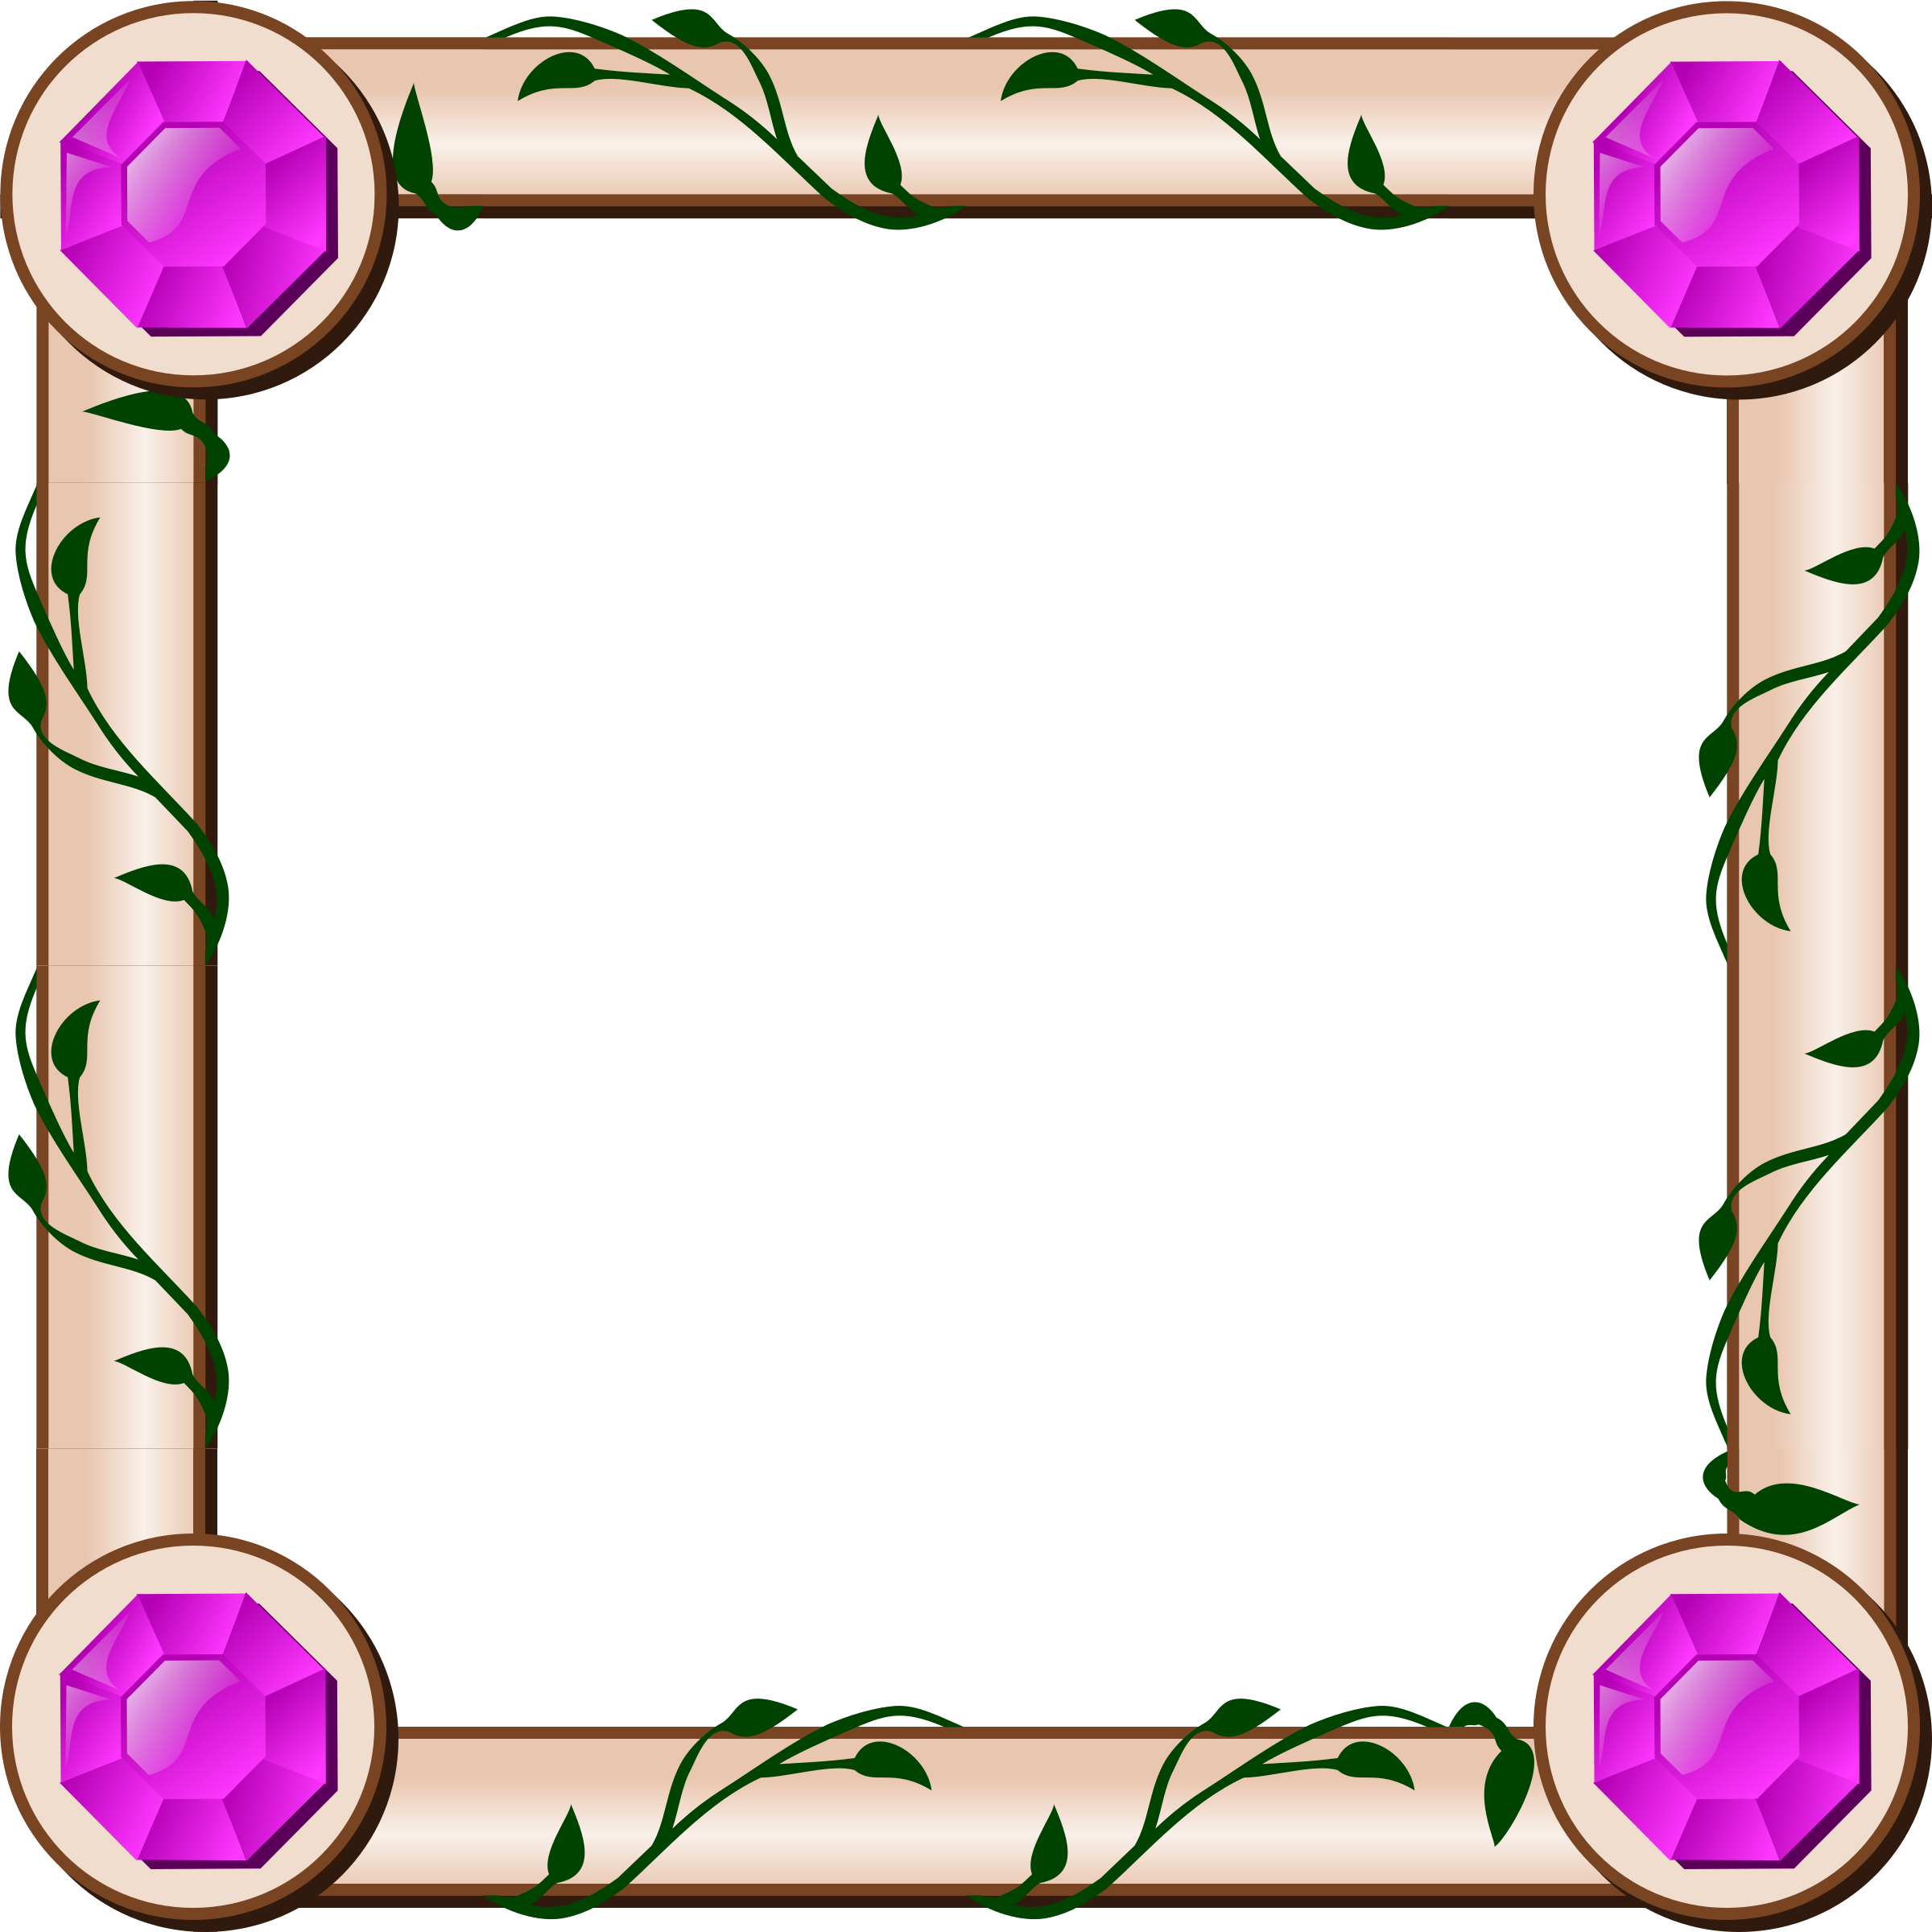 Rpg map ivy border. Square clipart jewel